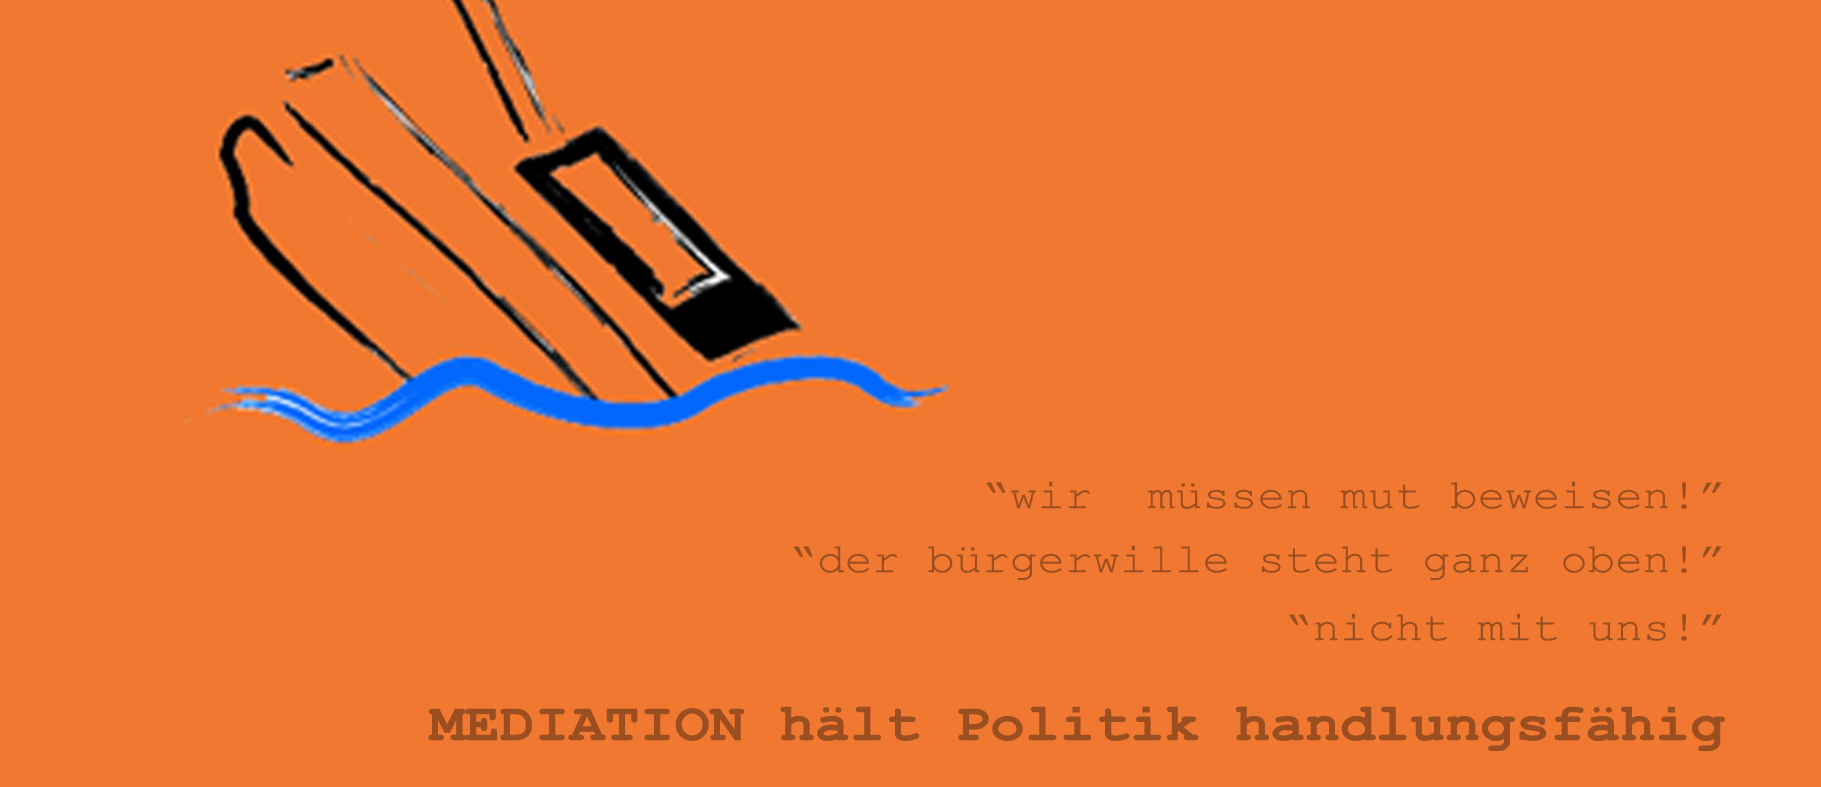 mediation_politik_orange